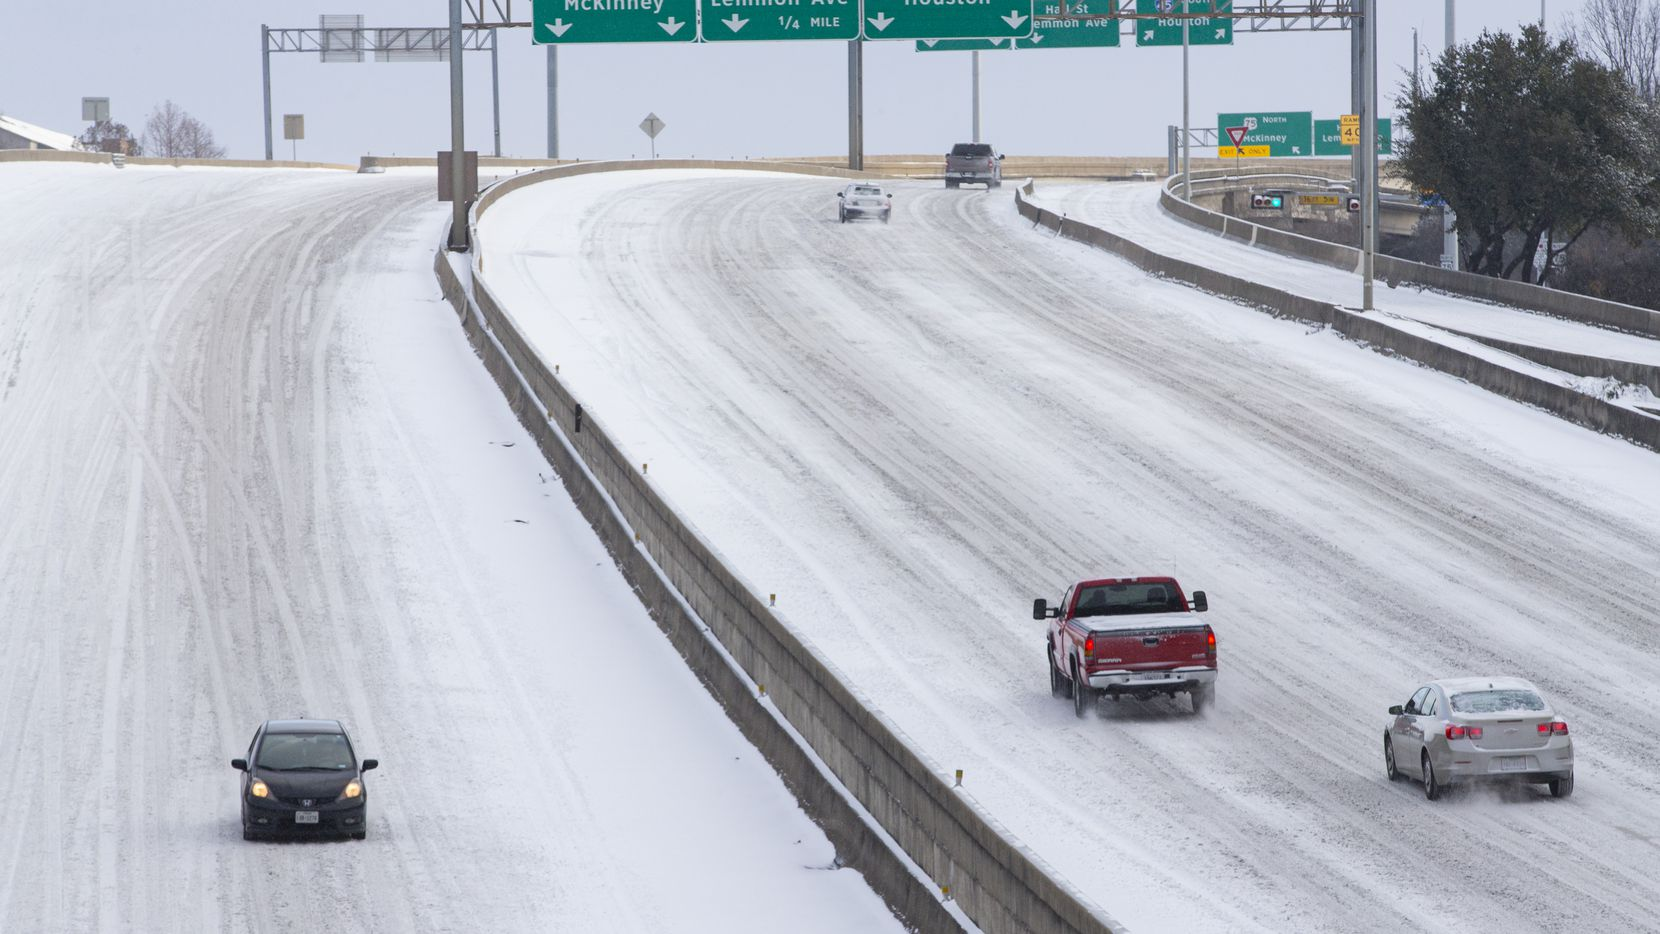 Snow covers Woodall Rodgers Freeway in Downtown Dallas on Monday, Feb. 15, 2021.